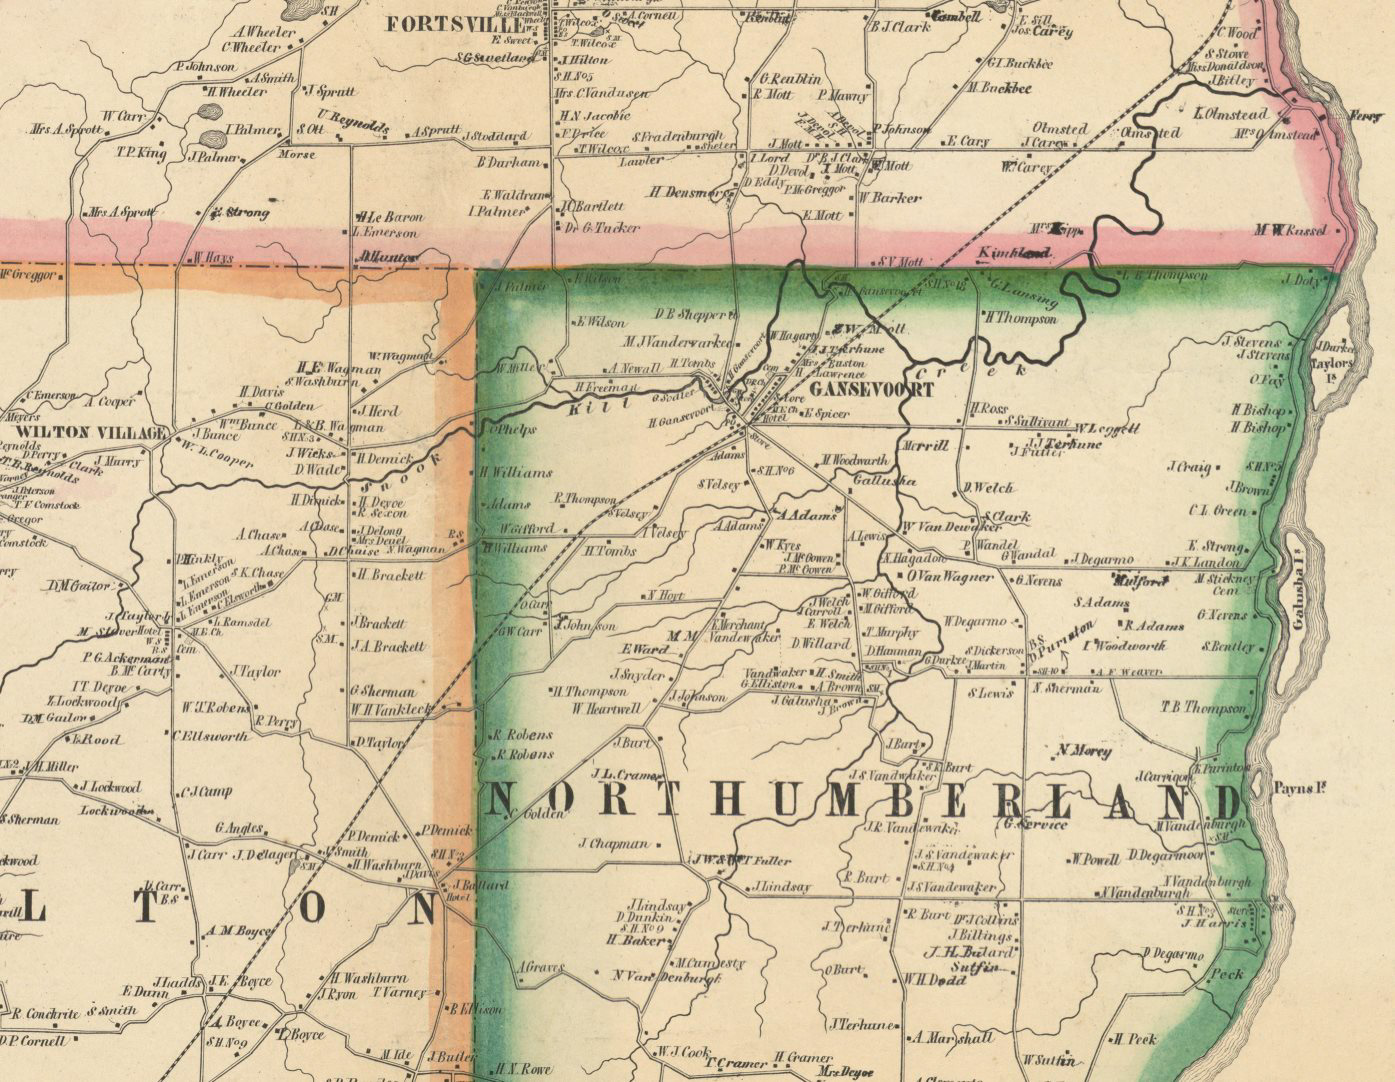 Map of Saratoga Co, NY by Samuel Geil, 1856